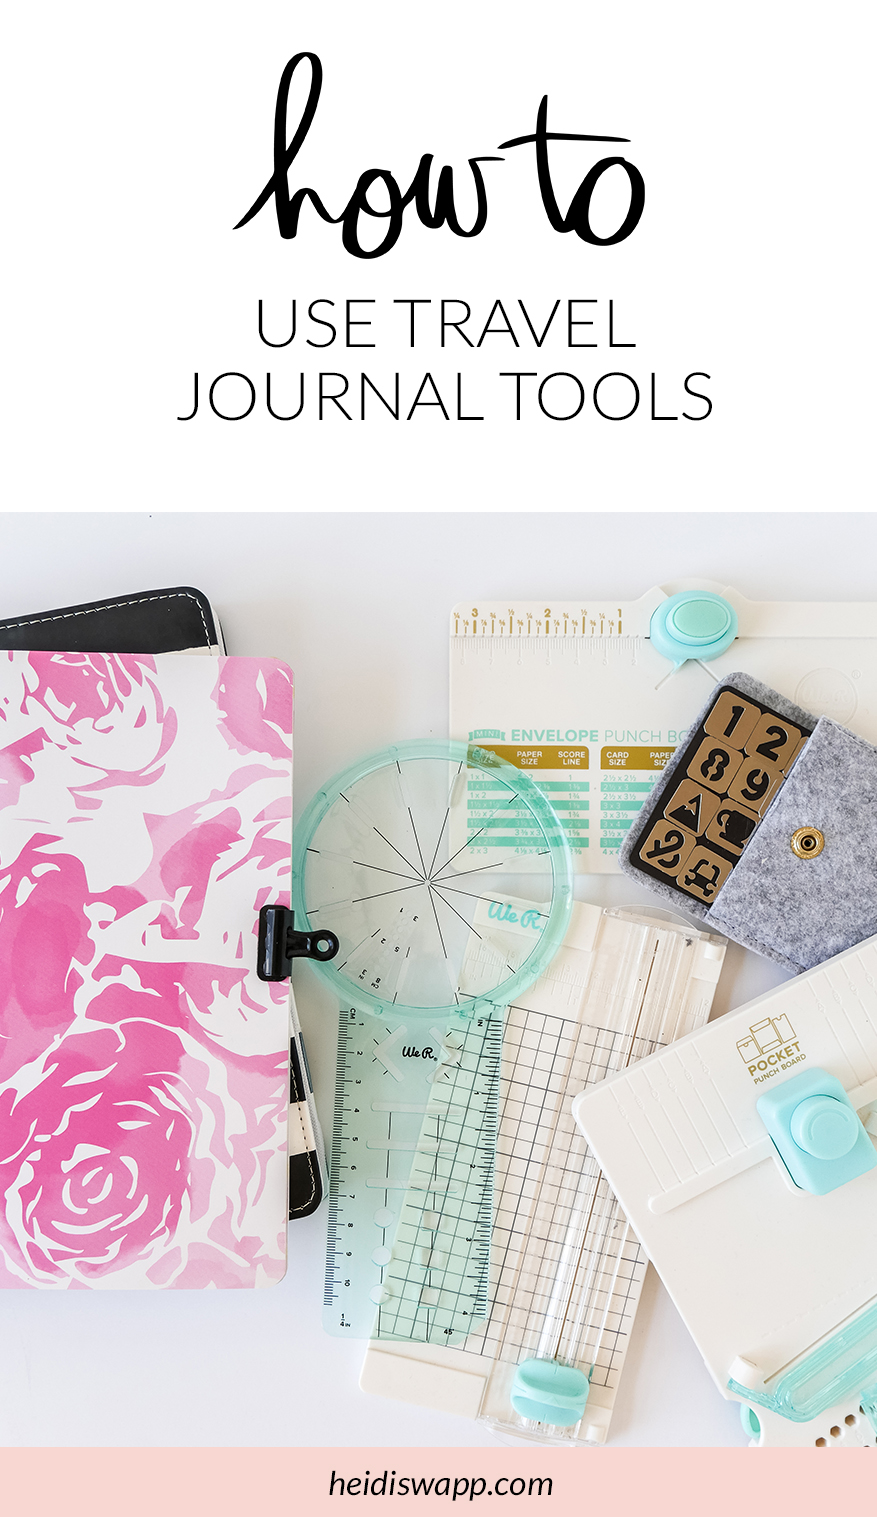 How to use Travel Journal Tools by @jamiepate for @heidiswapp